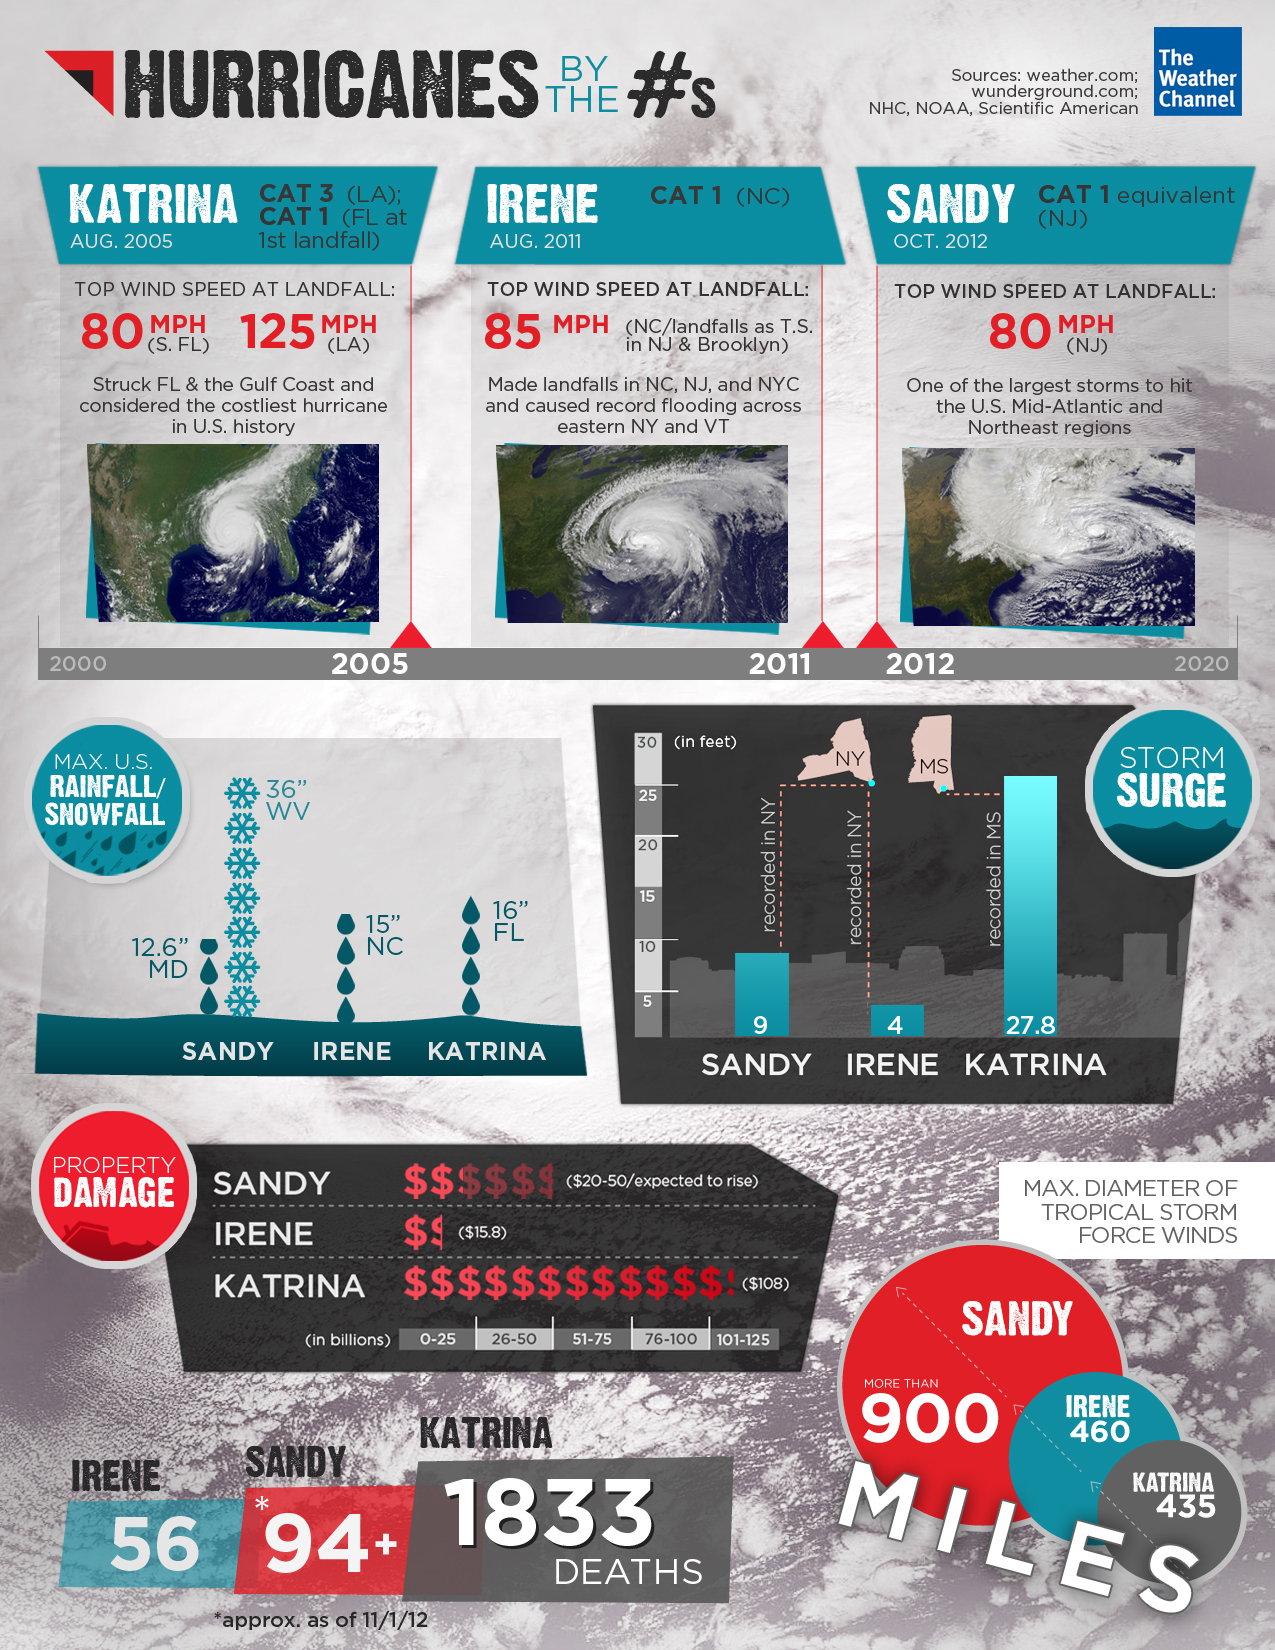 hurricanes-by-the-numbers_50c7a5647dd9d